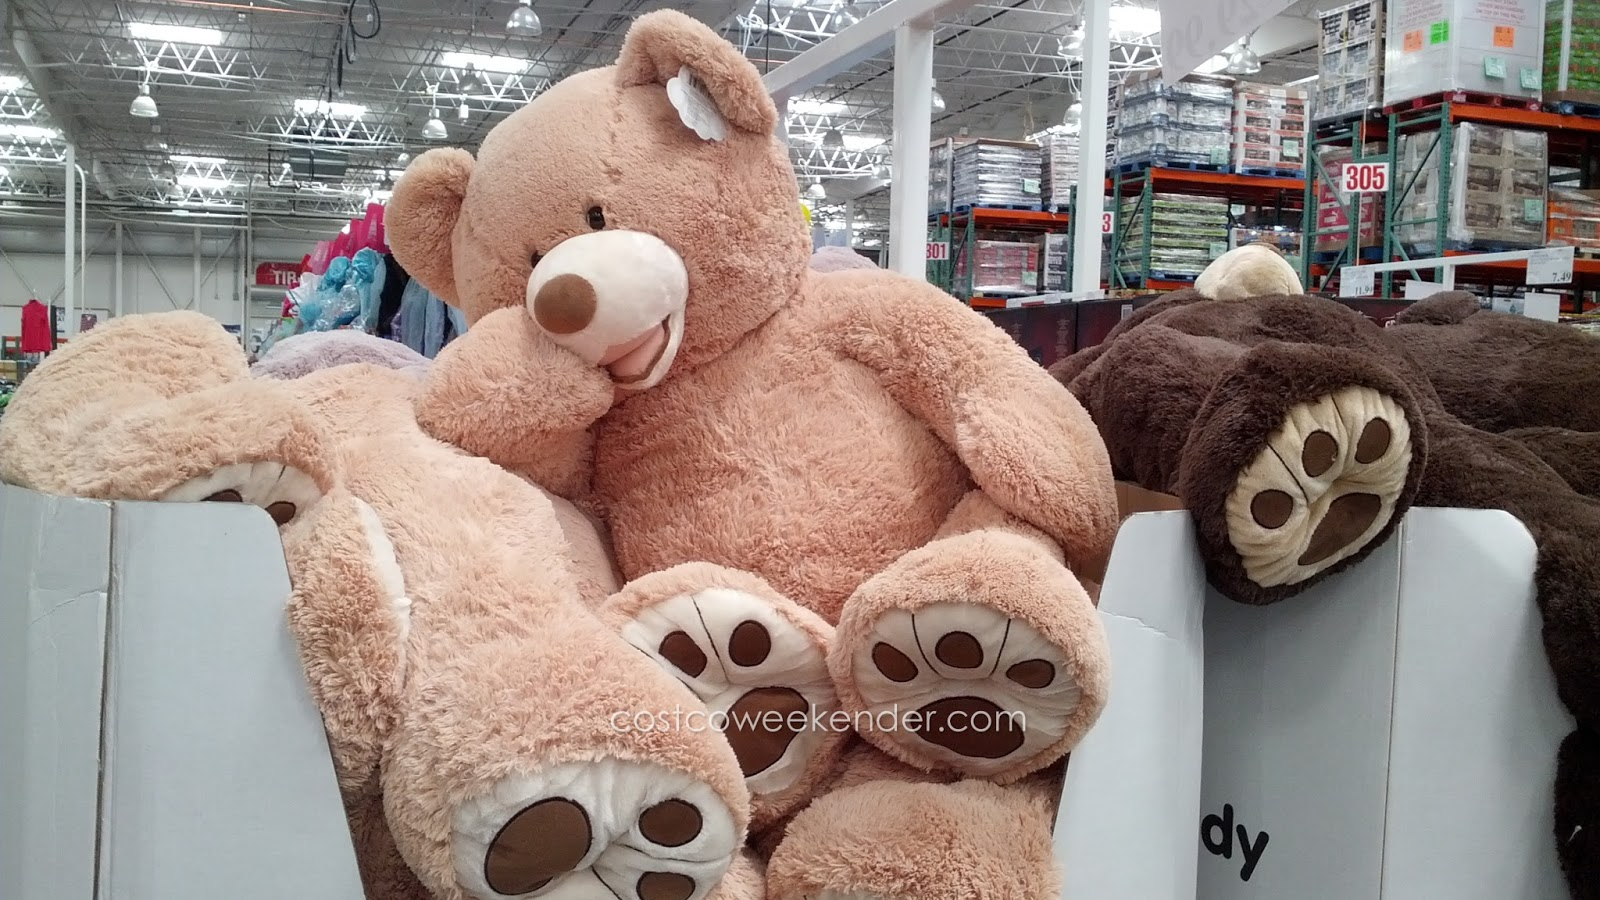 Get the hugs you deserve from the Hugfun 53-inch Plush Bear